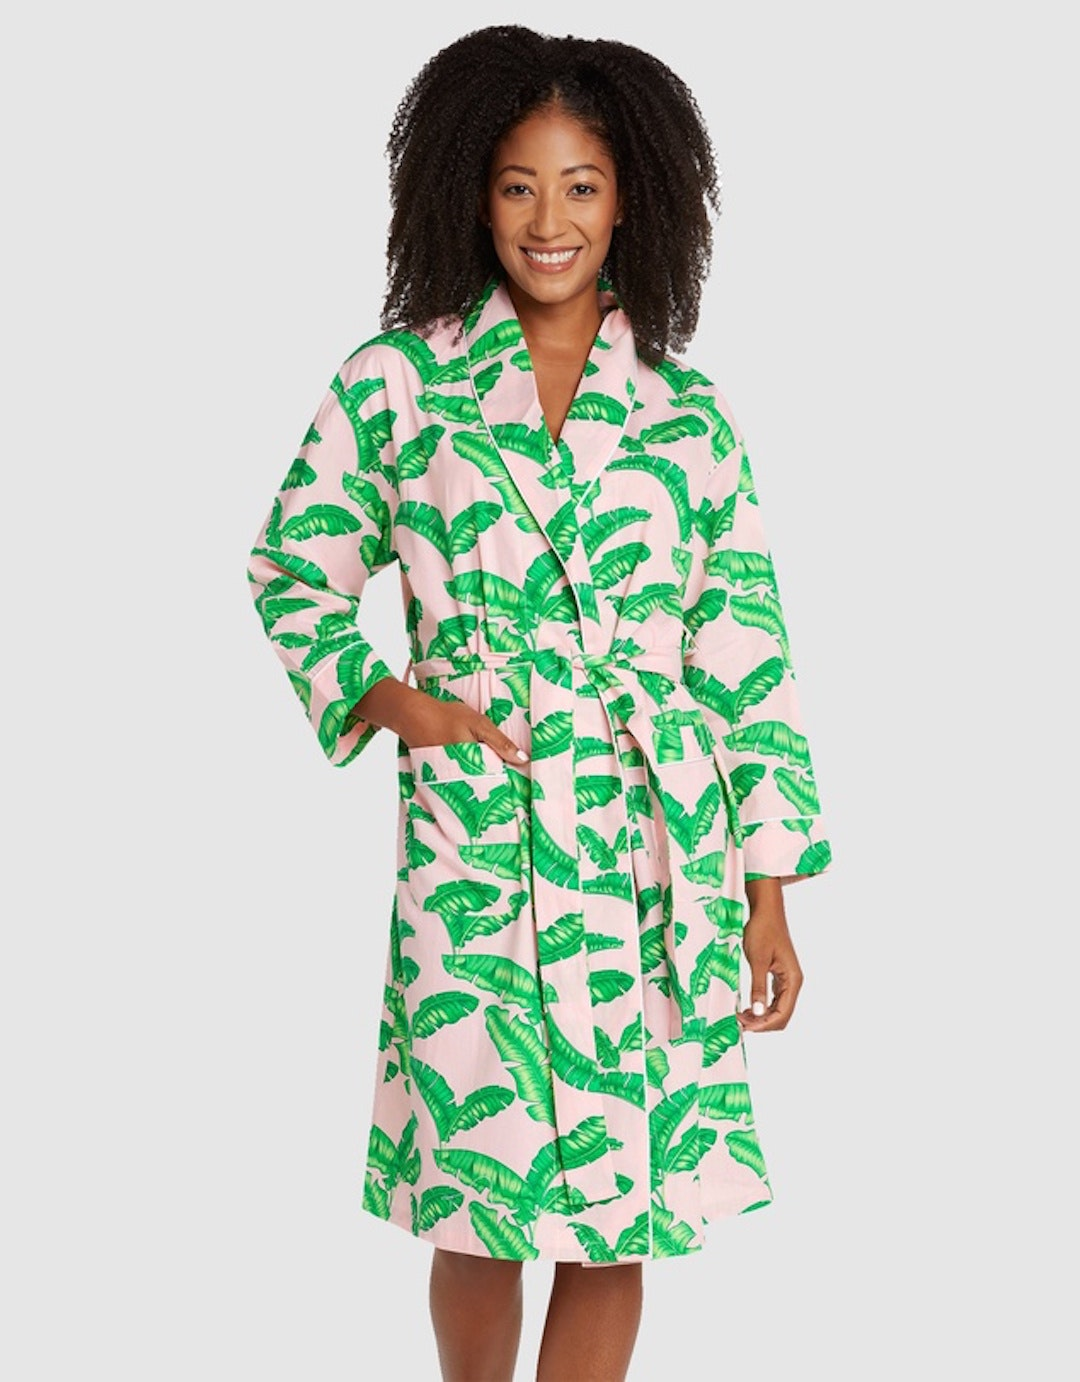 A woman smiles wearing a dressing gown with a palm tree print.